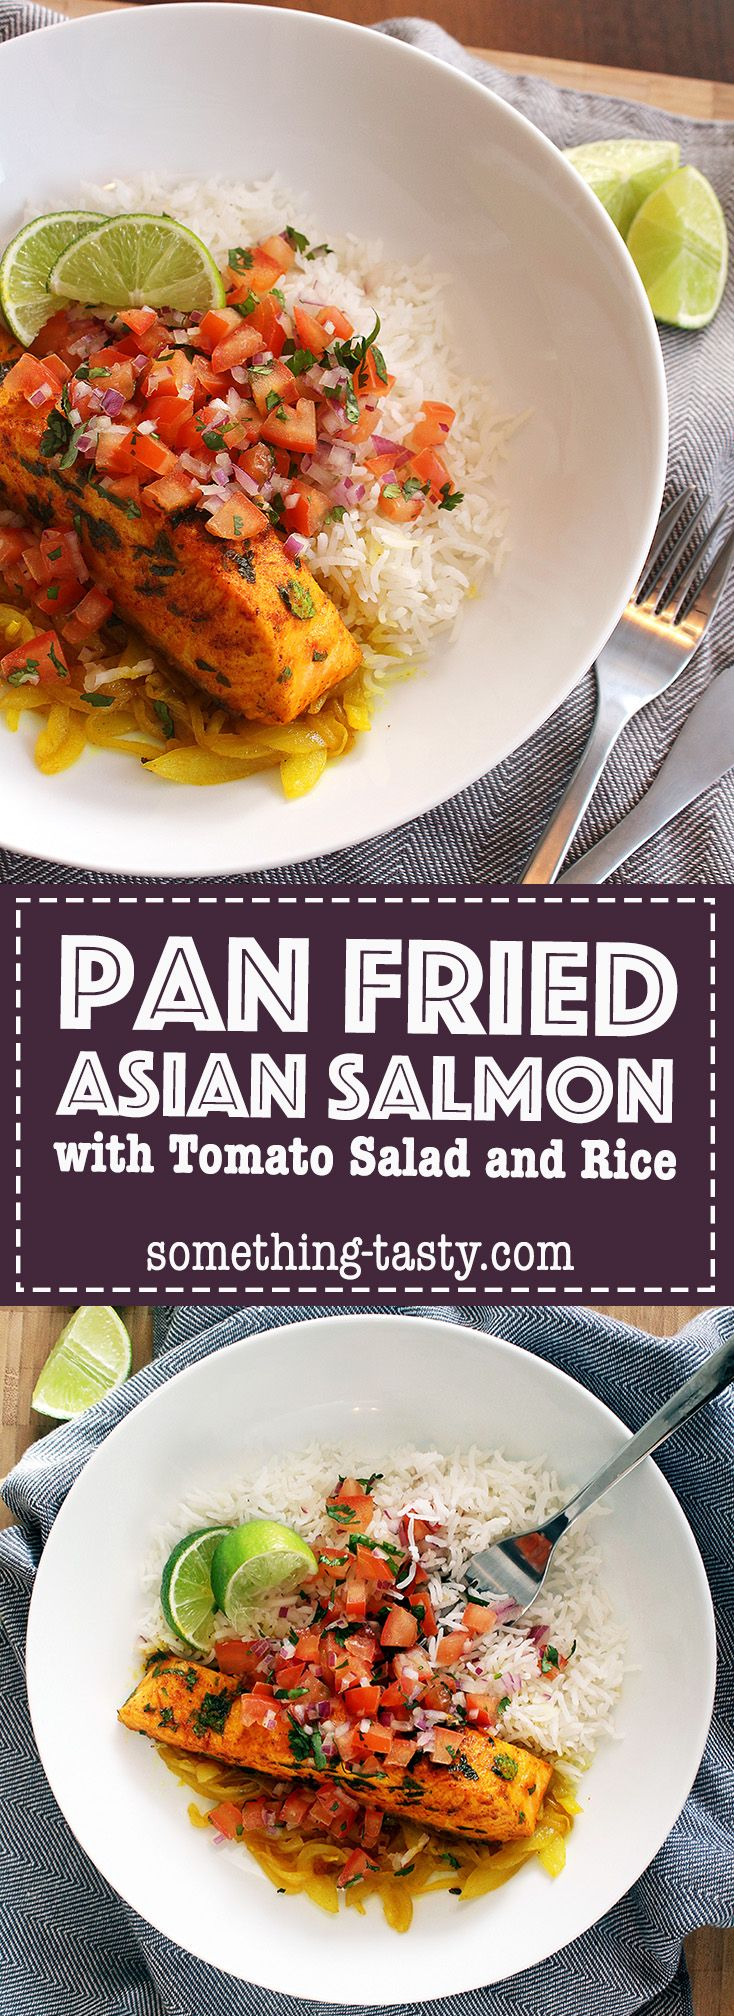 Pan Fried Asian Salmon – An easy and delicious family friendly meal that can be made in under 30 minutes! From Something Tasty Blog